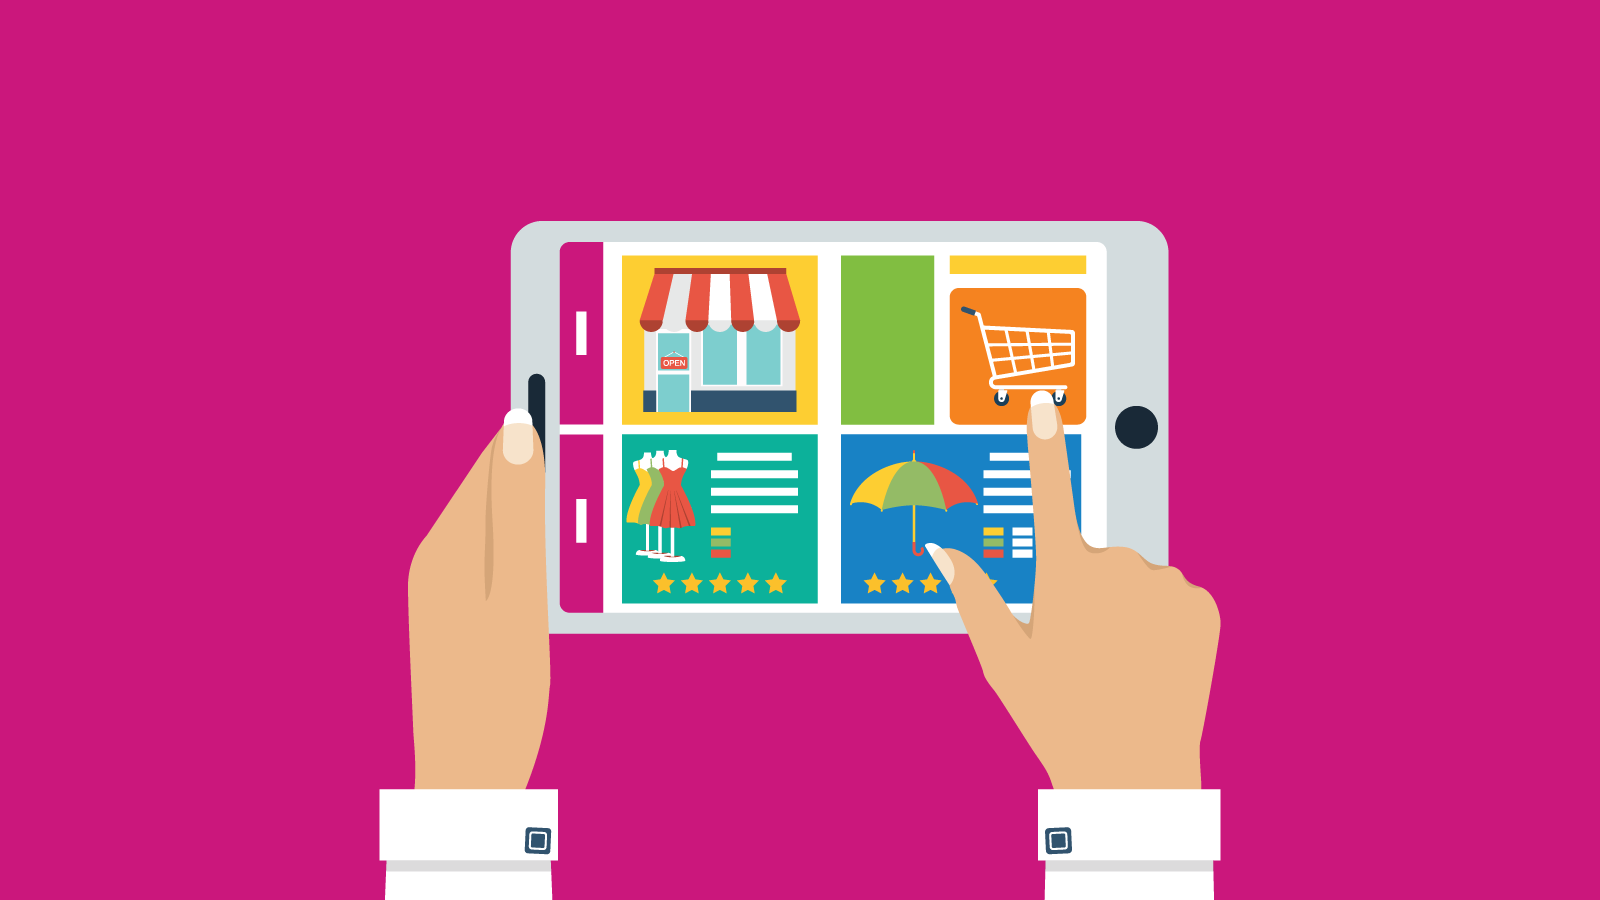 5 UX issues retailers still struggle with